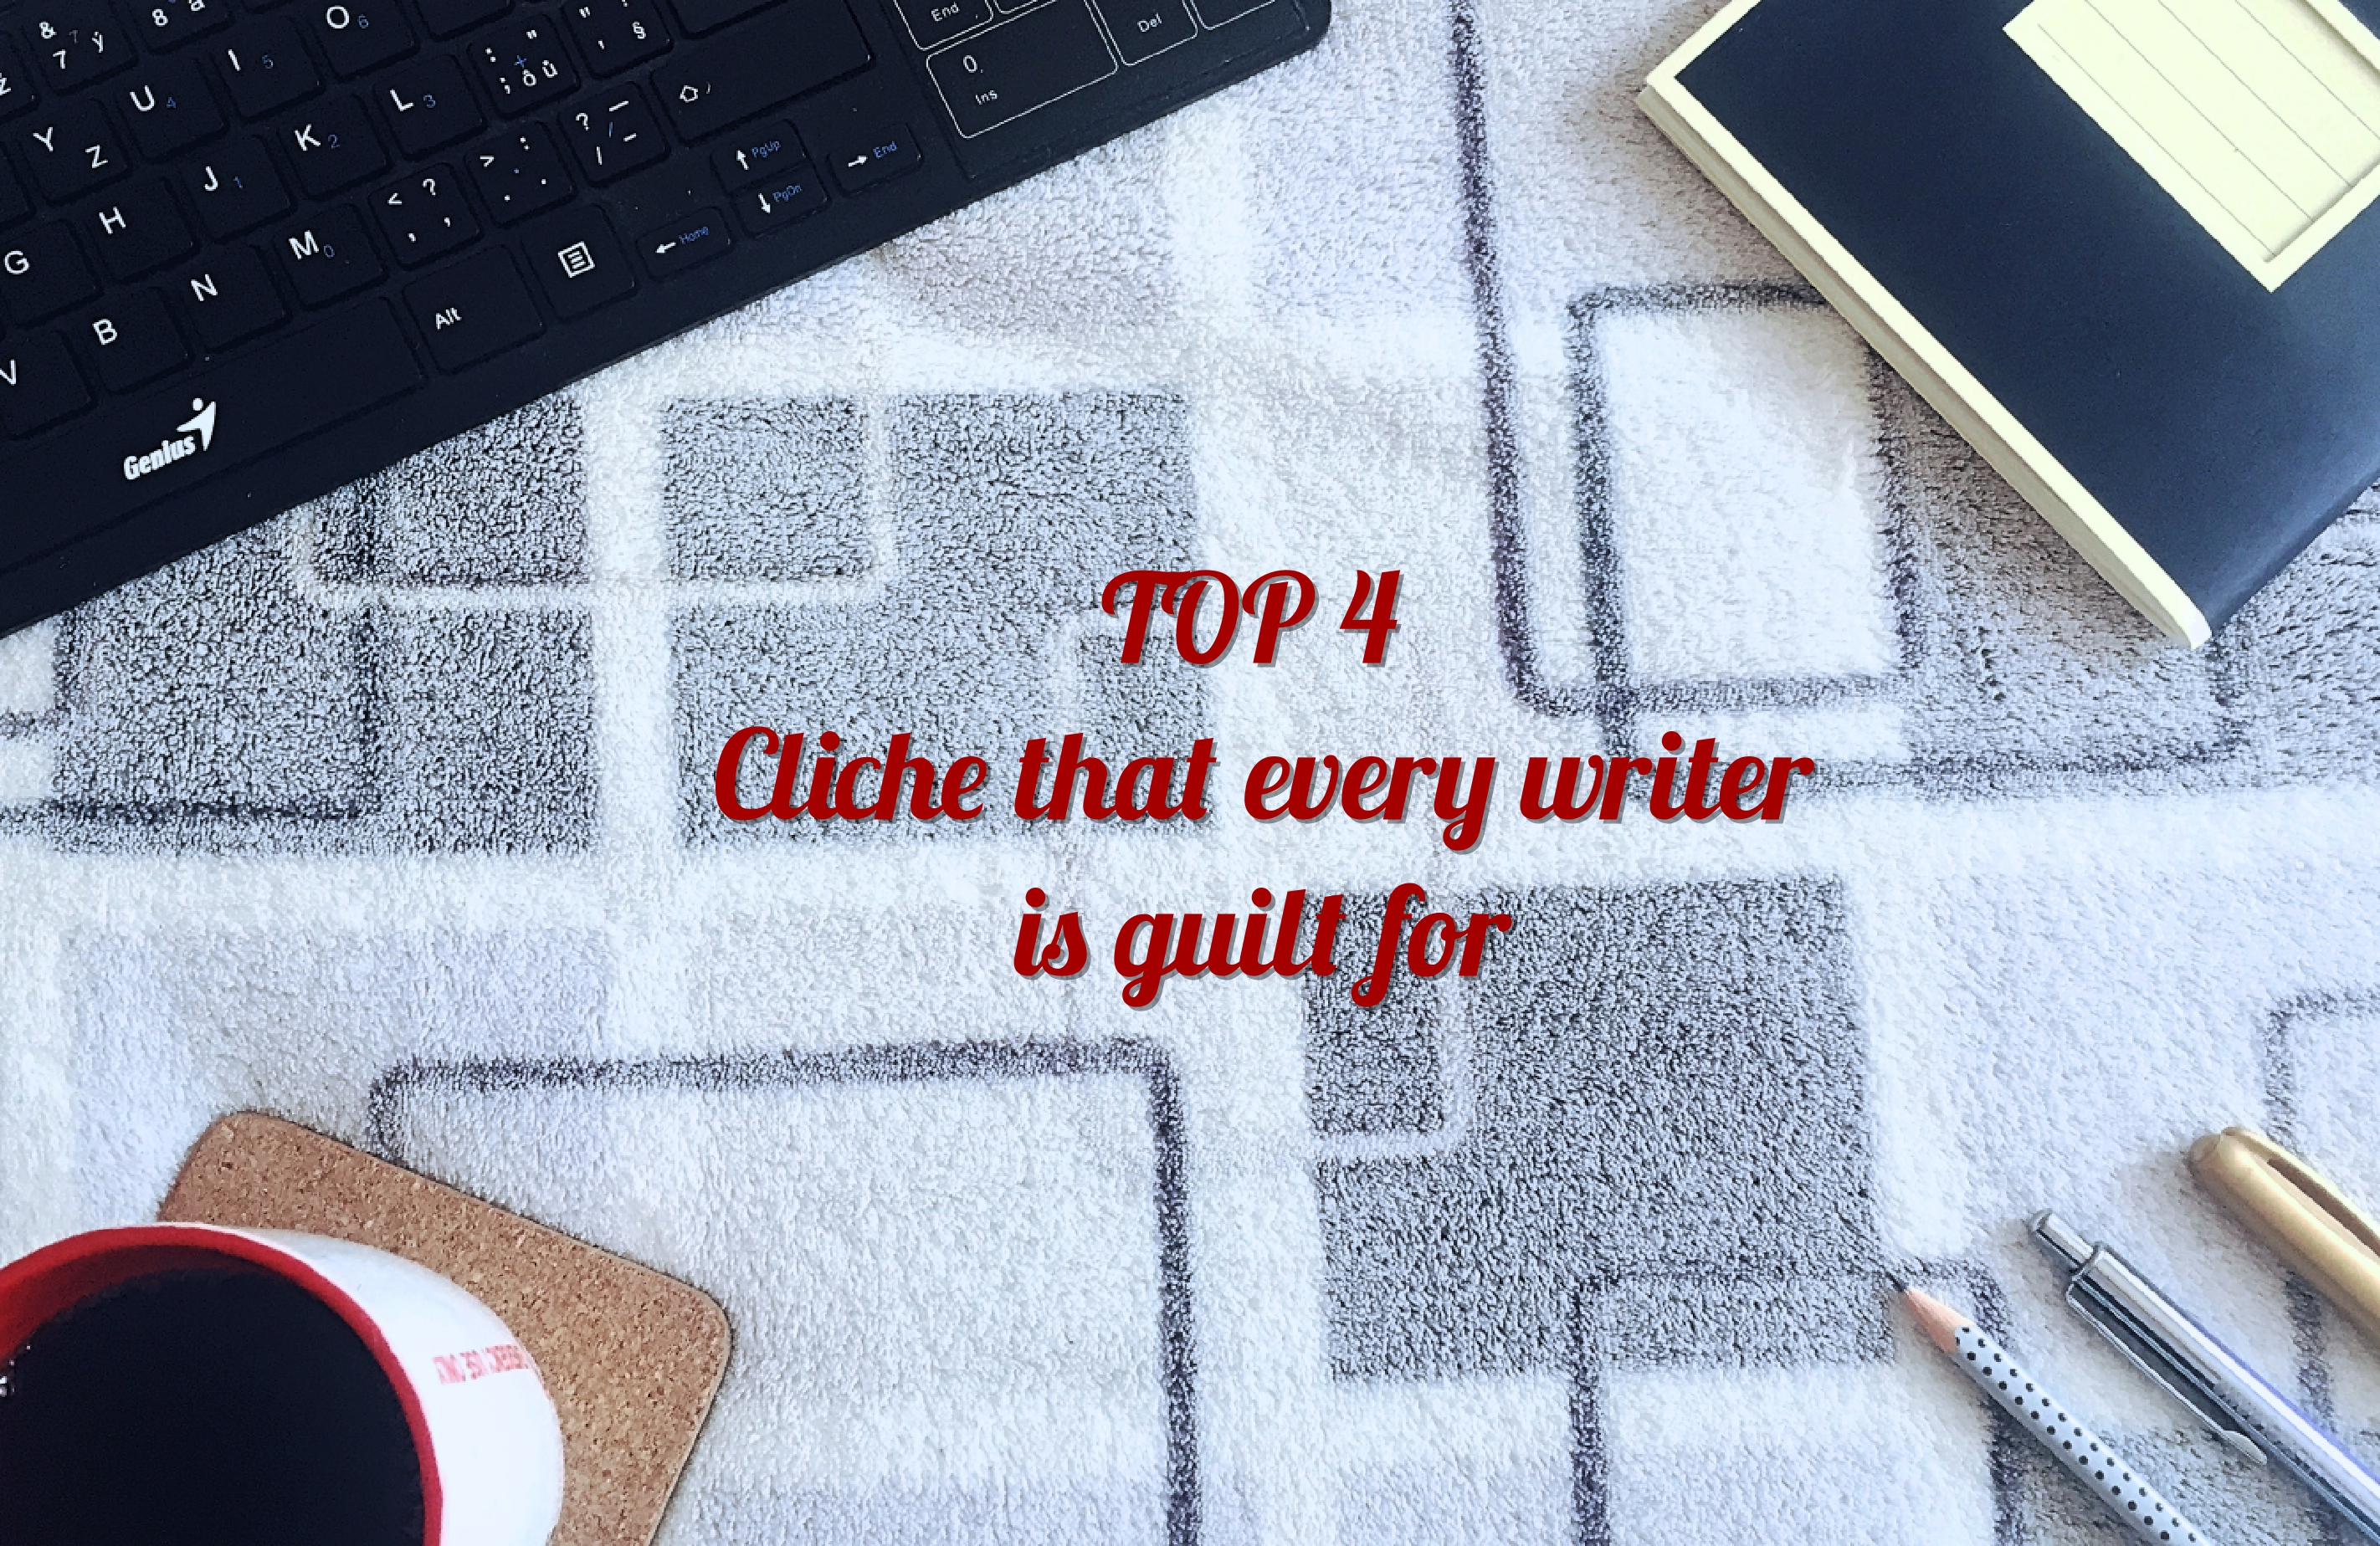 Top 4 cliche that every writer is guilt for